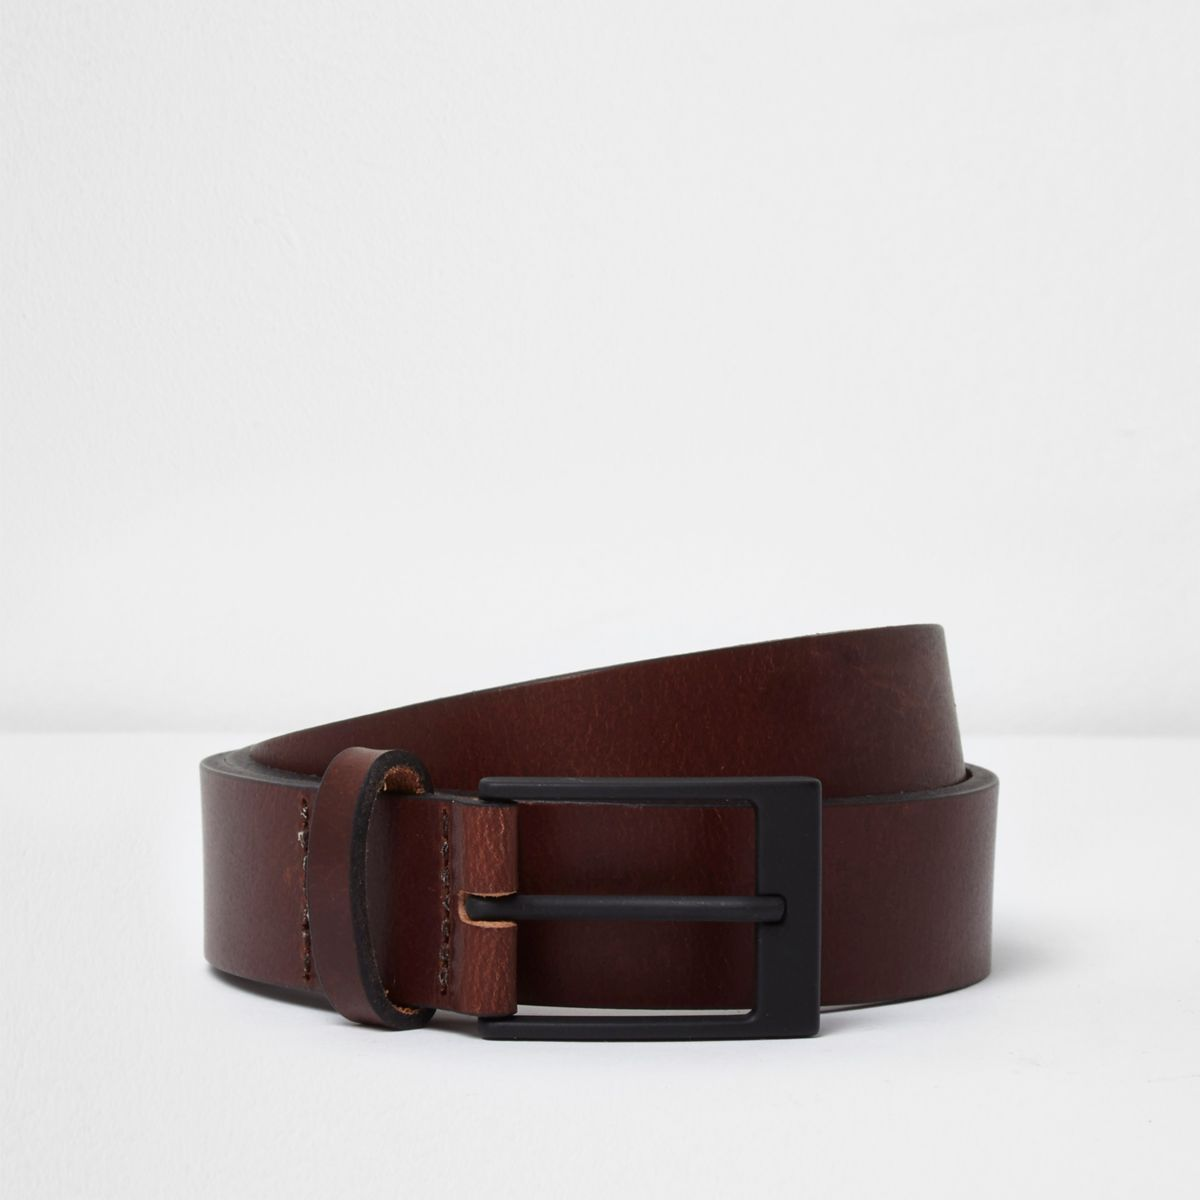 Brown leather black buckle belt